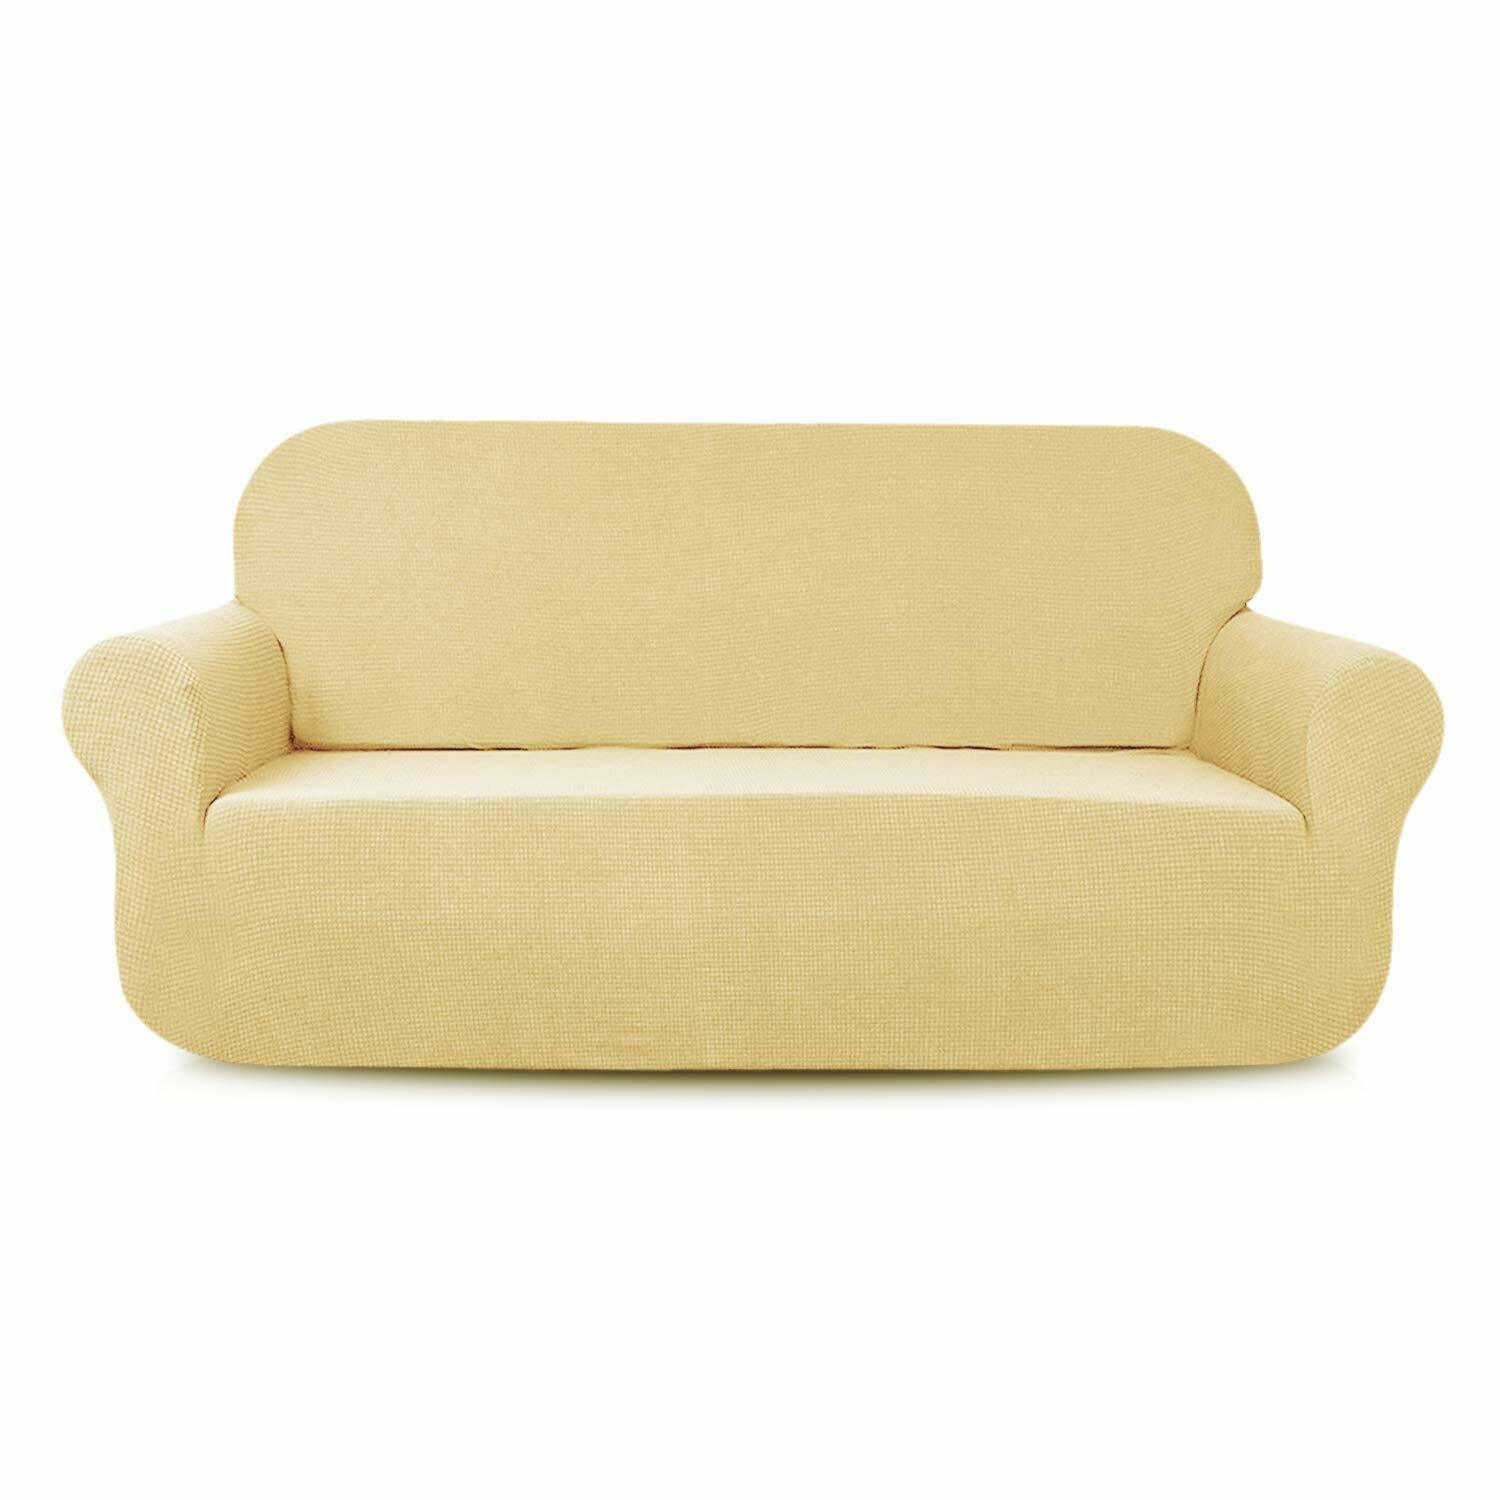 Enjoyable Aujoy Stretch Loveseat Cover Water Repellent Couch Covers Dog Cat Pet Proof Sofa Inzonedesignstudio Interior Chair Design Inzonedesignstudiocom